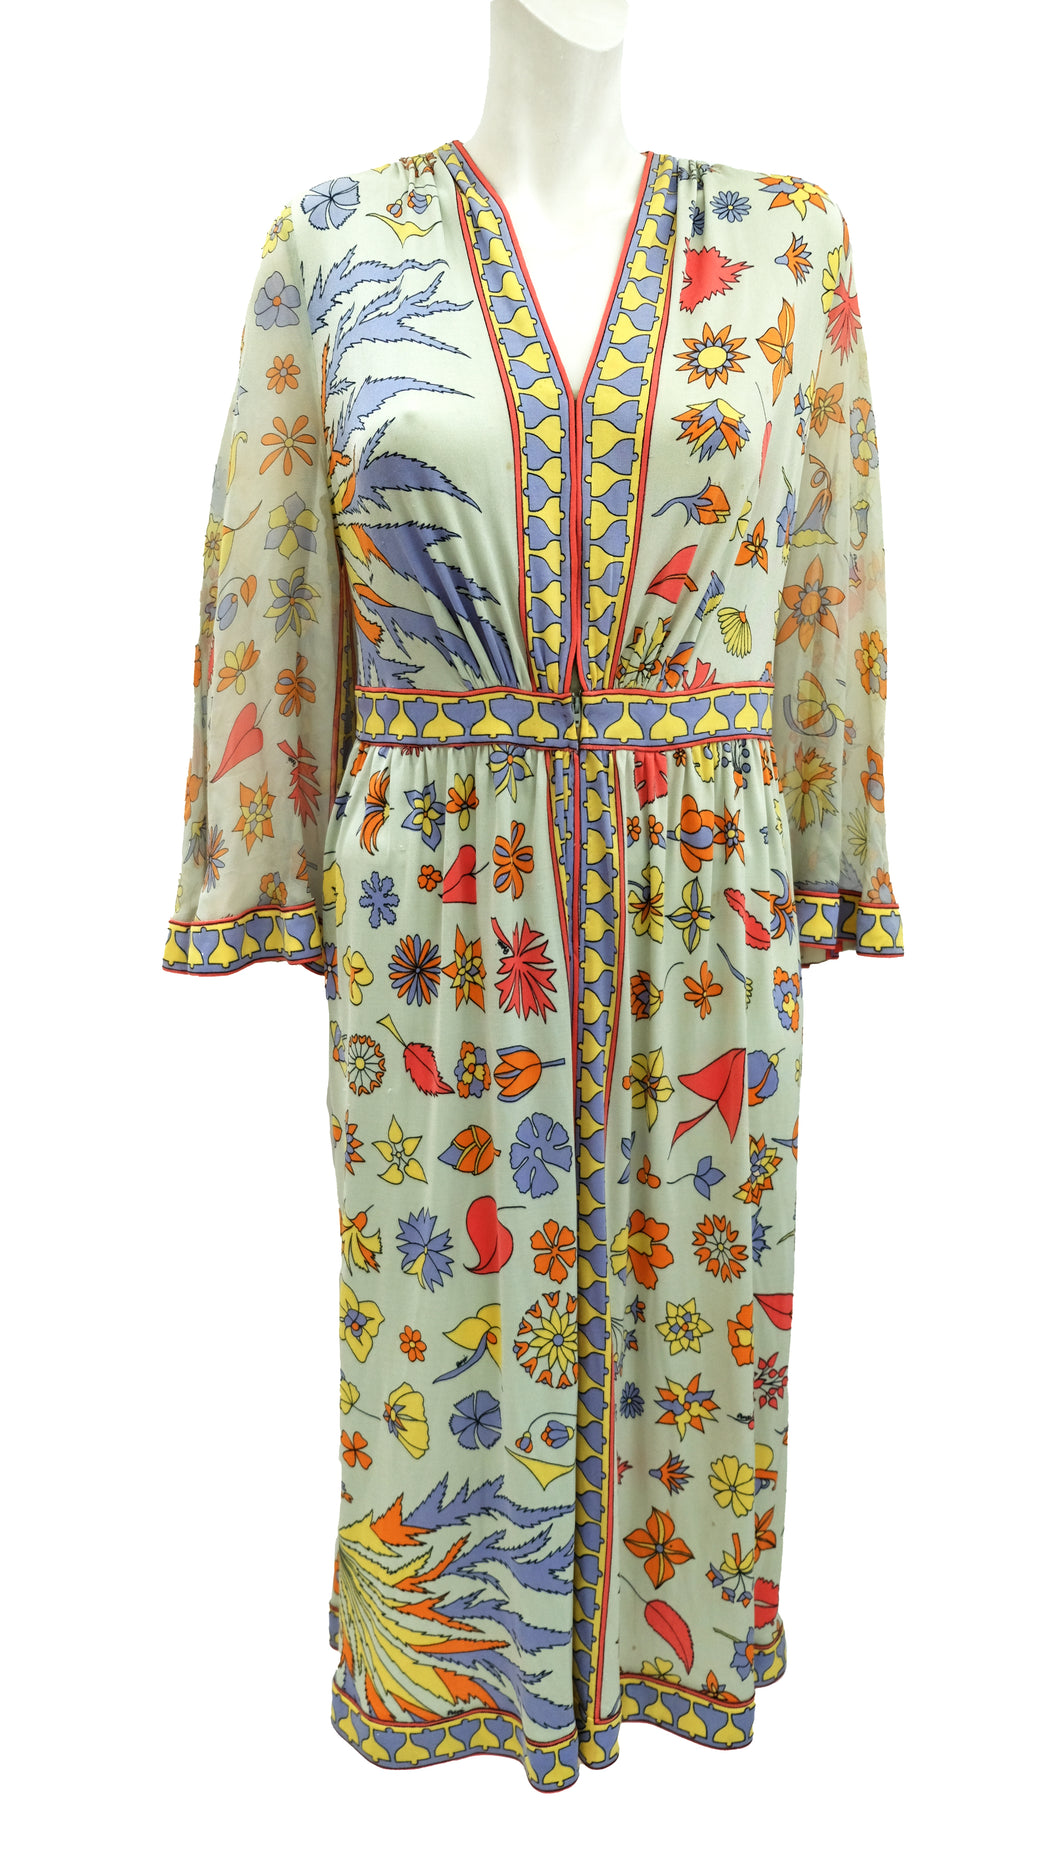 Nan Duskin Vintage Dress in Printed Silk, UK12-14